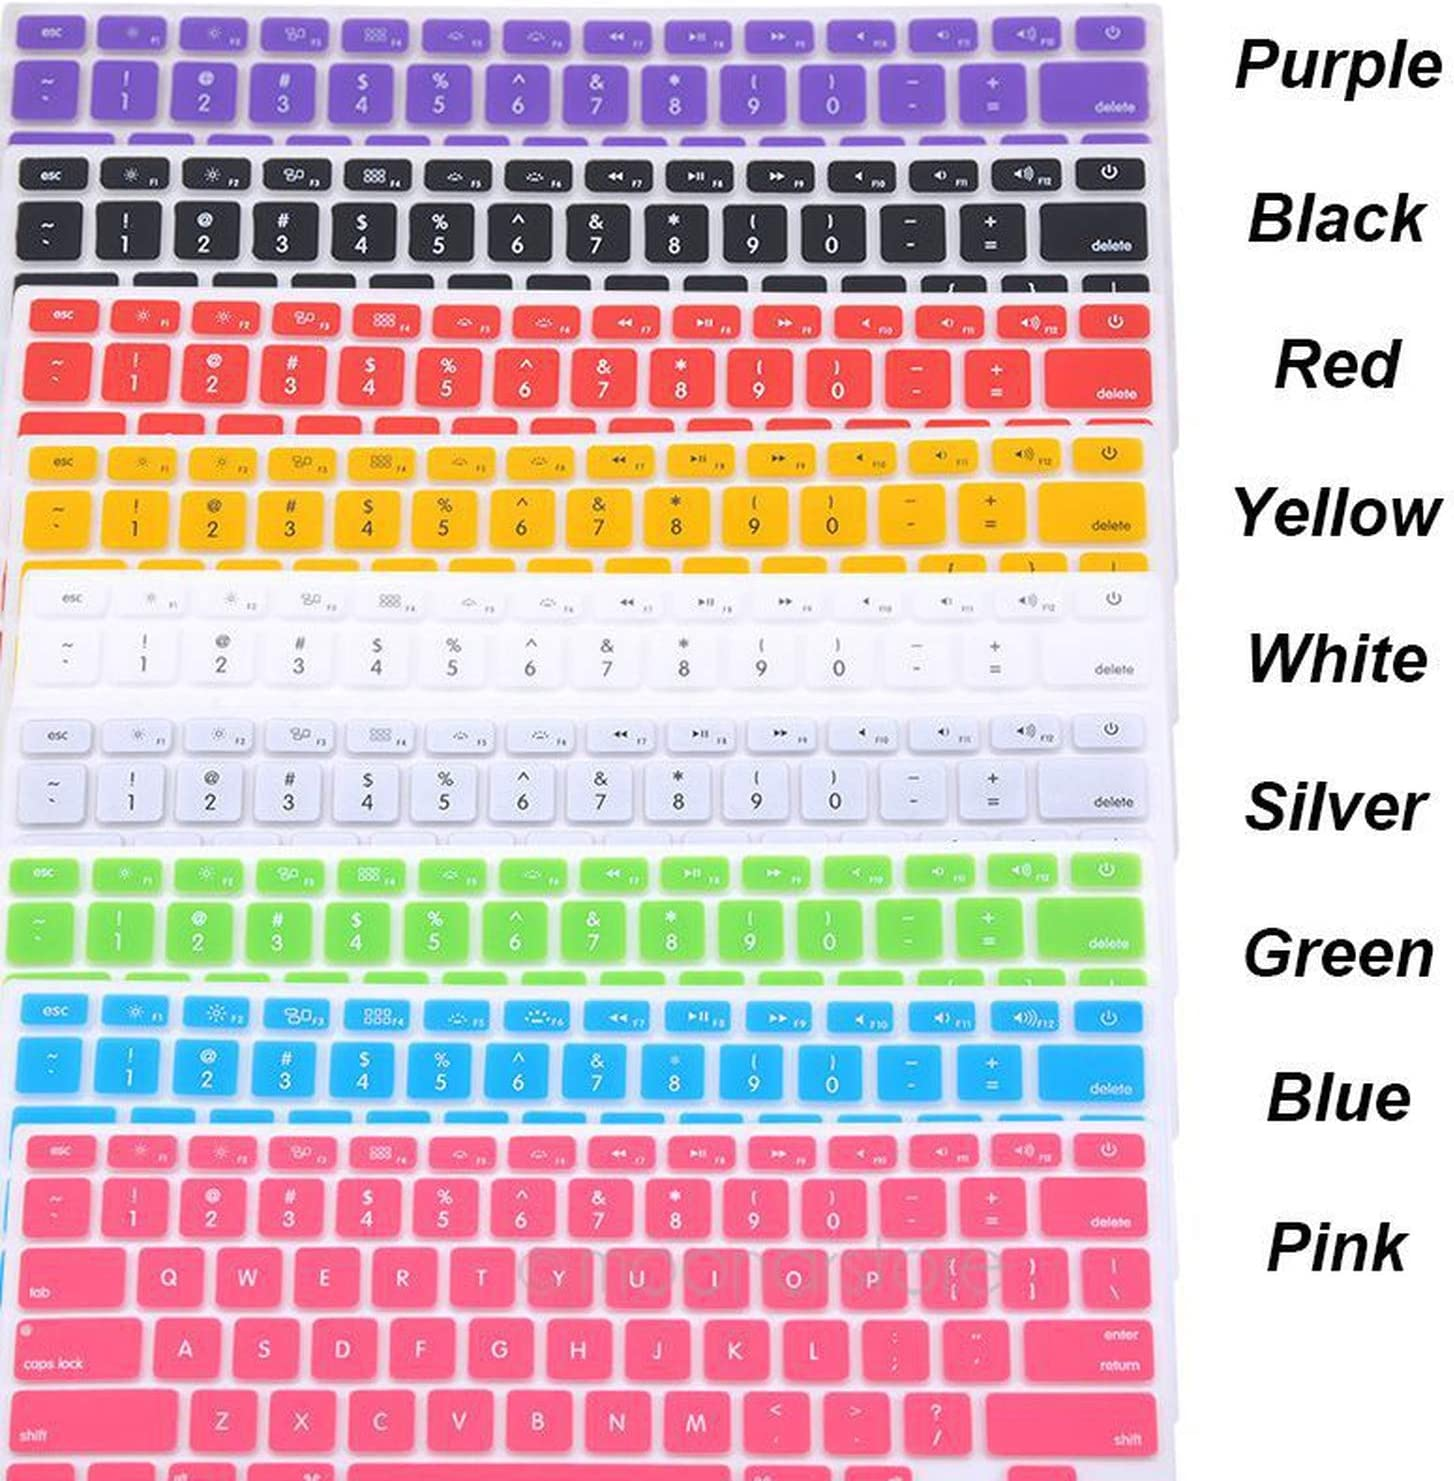 Laptop Accessories 9 Colors Silicone Laptop Keyboard Cover Skin for MacBook Pro MAC 13 15 Air 13 Soft Keyboard Stickers-Black